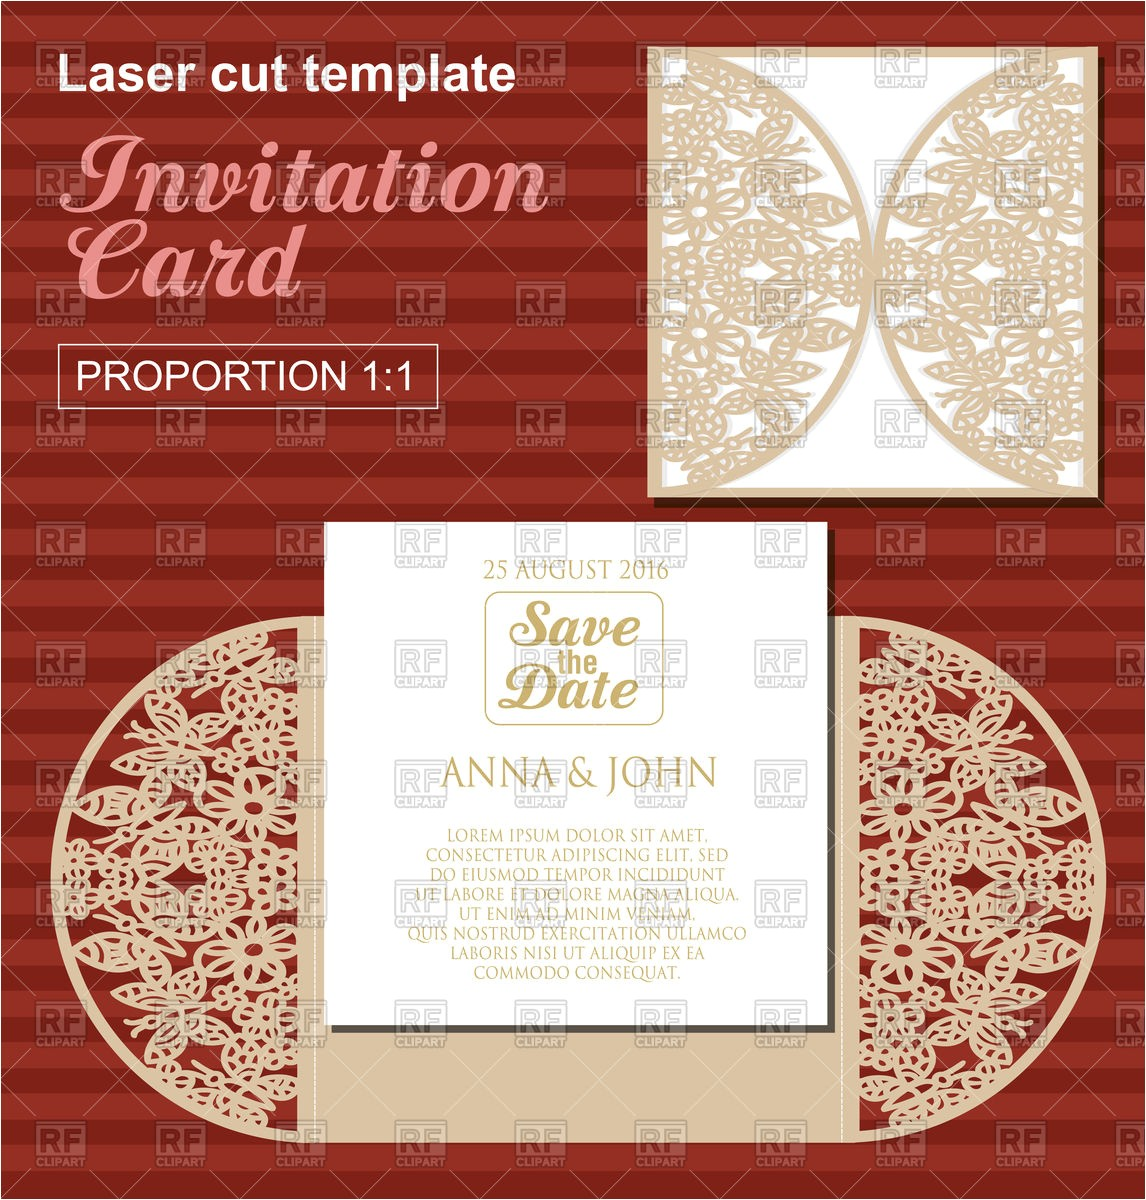 die laser cut wedding card template wedding invitation card with lace 111611 vector clipart